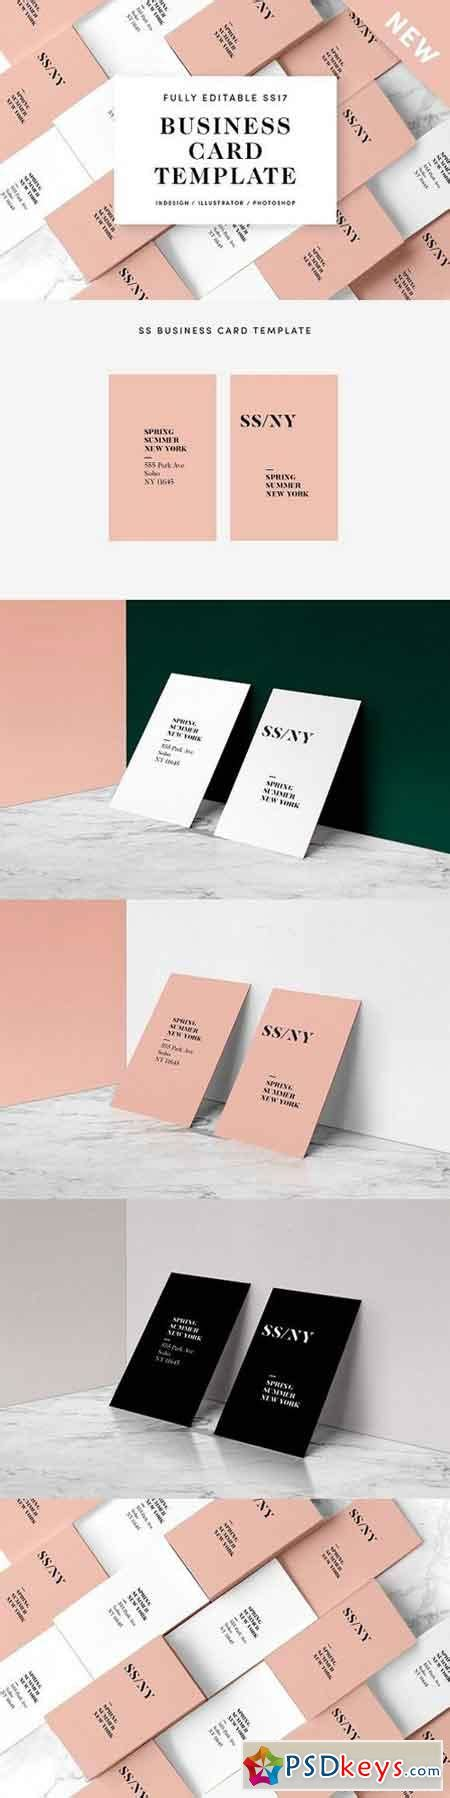 ss fashion business card template 1151598 187 free download